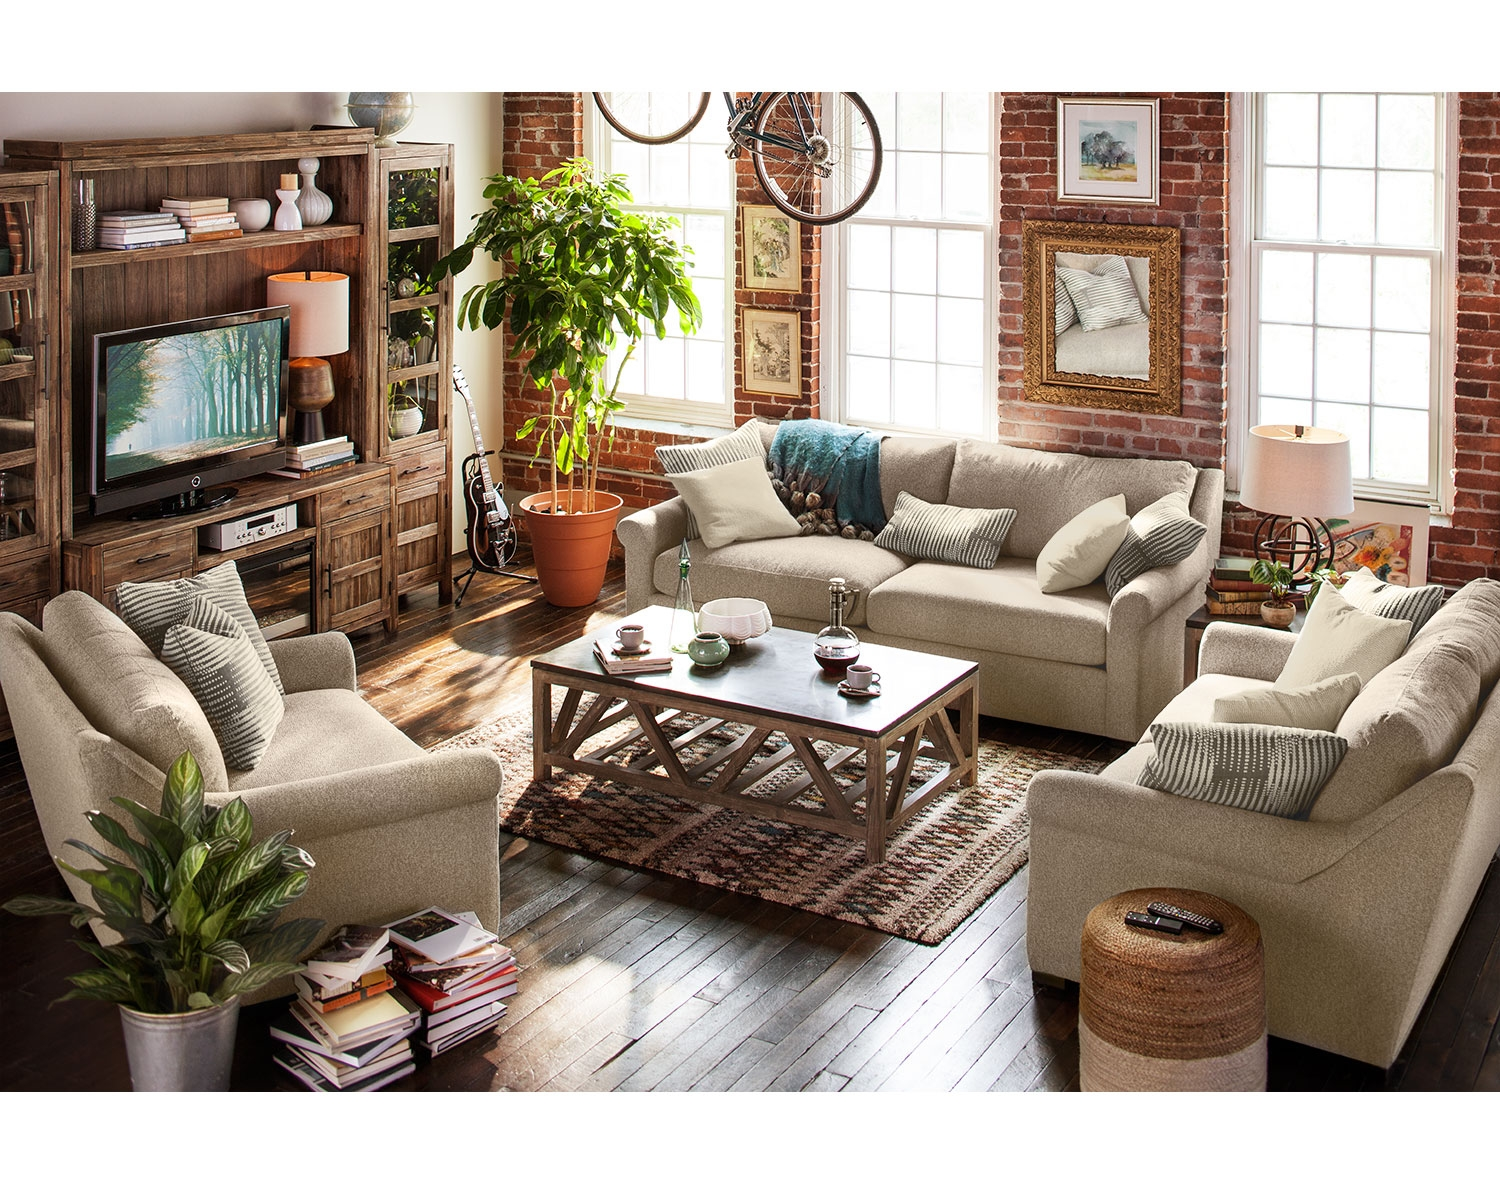 Unique If you ure looking for color consider the Bailey Blue Living Room Collection